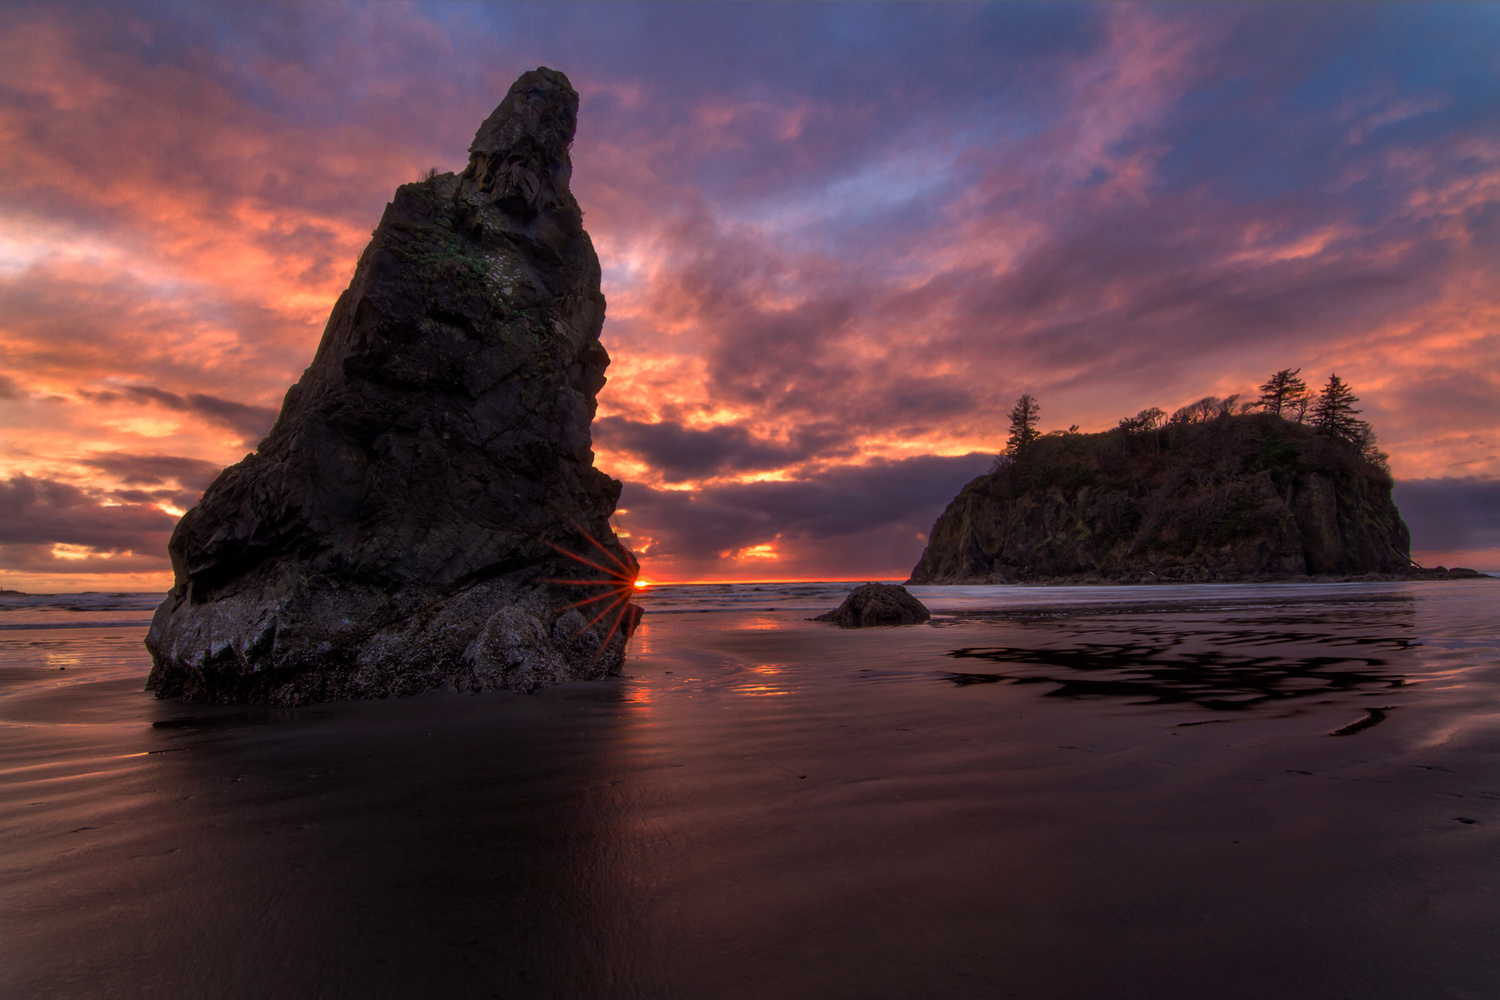 Sunset at Ruby Beach by Nick Souvall